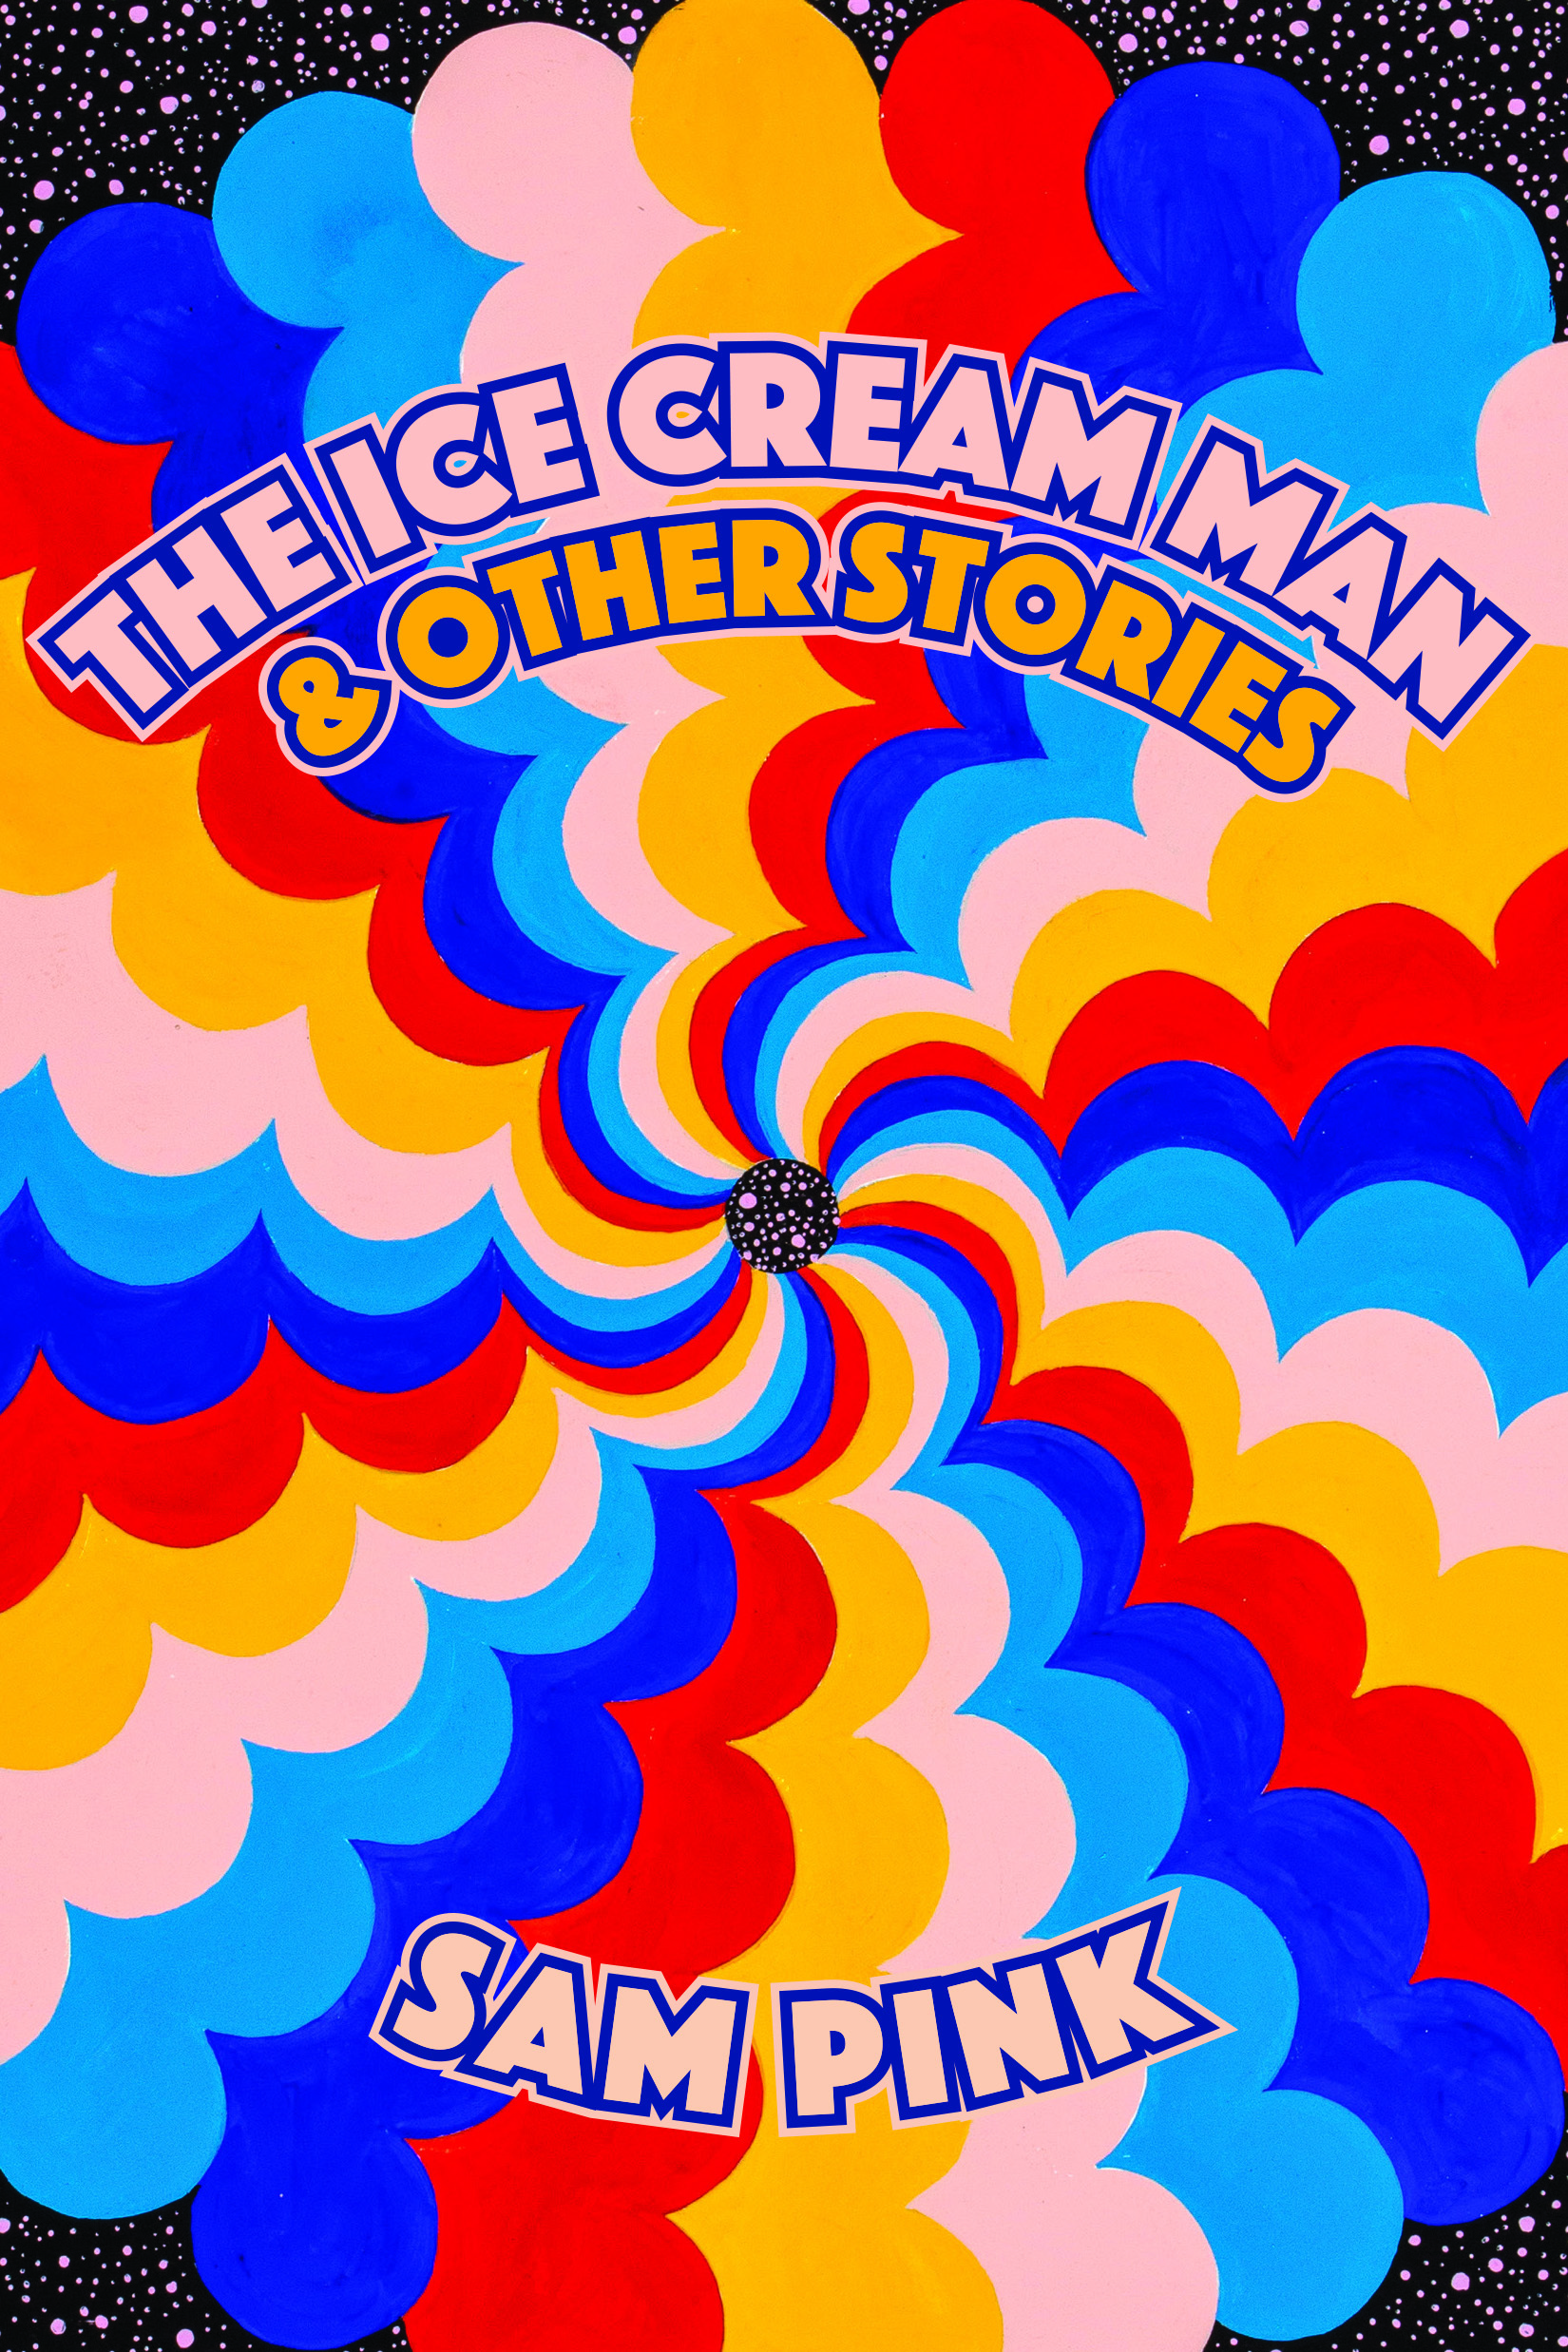 Book Launch: The Ice Cream Man by Sam Pink in conversation with Halle Butler